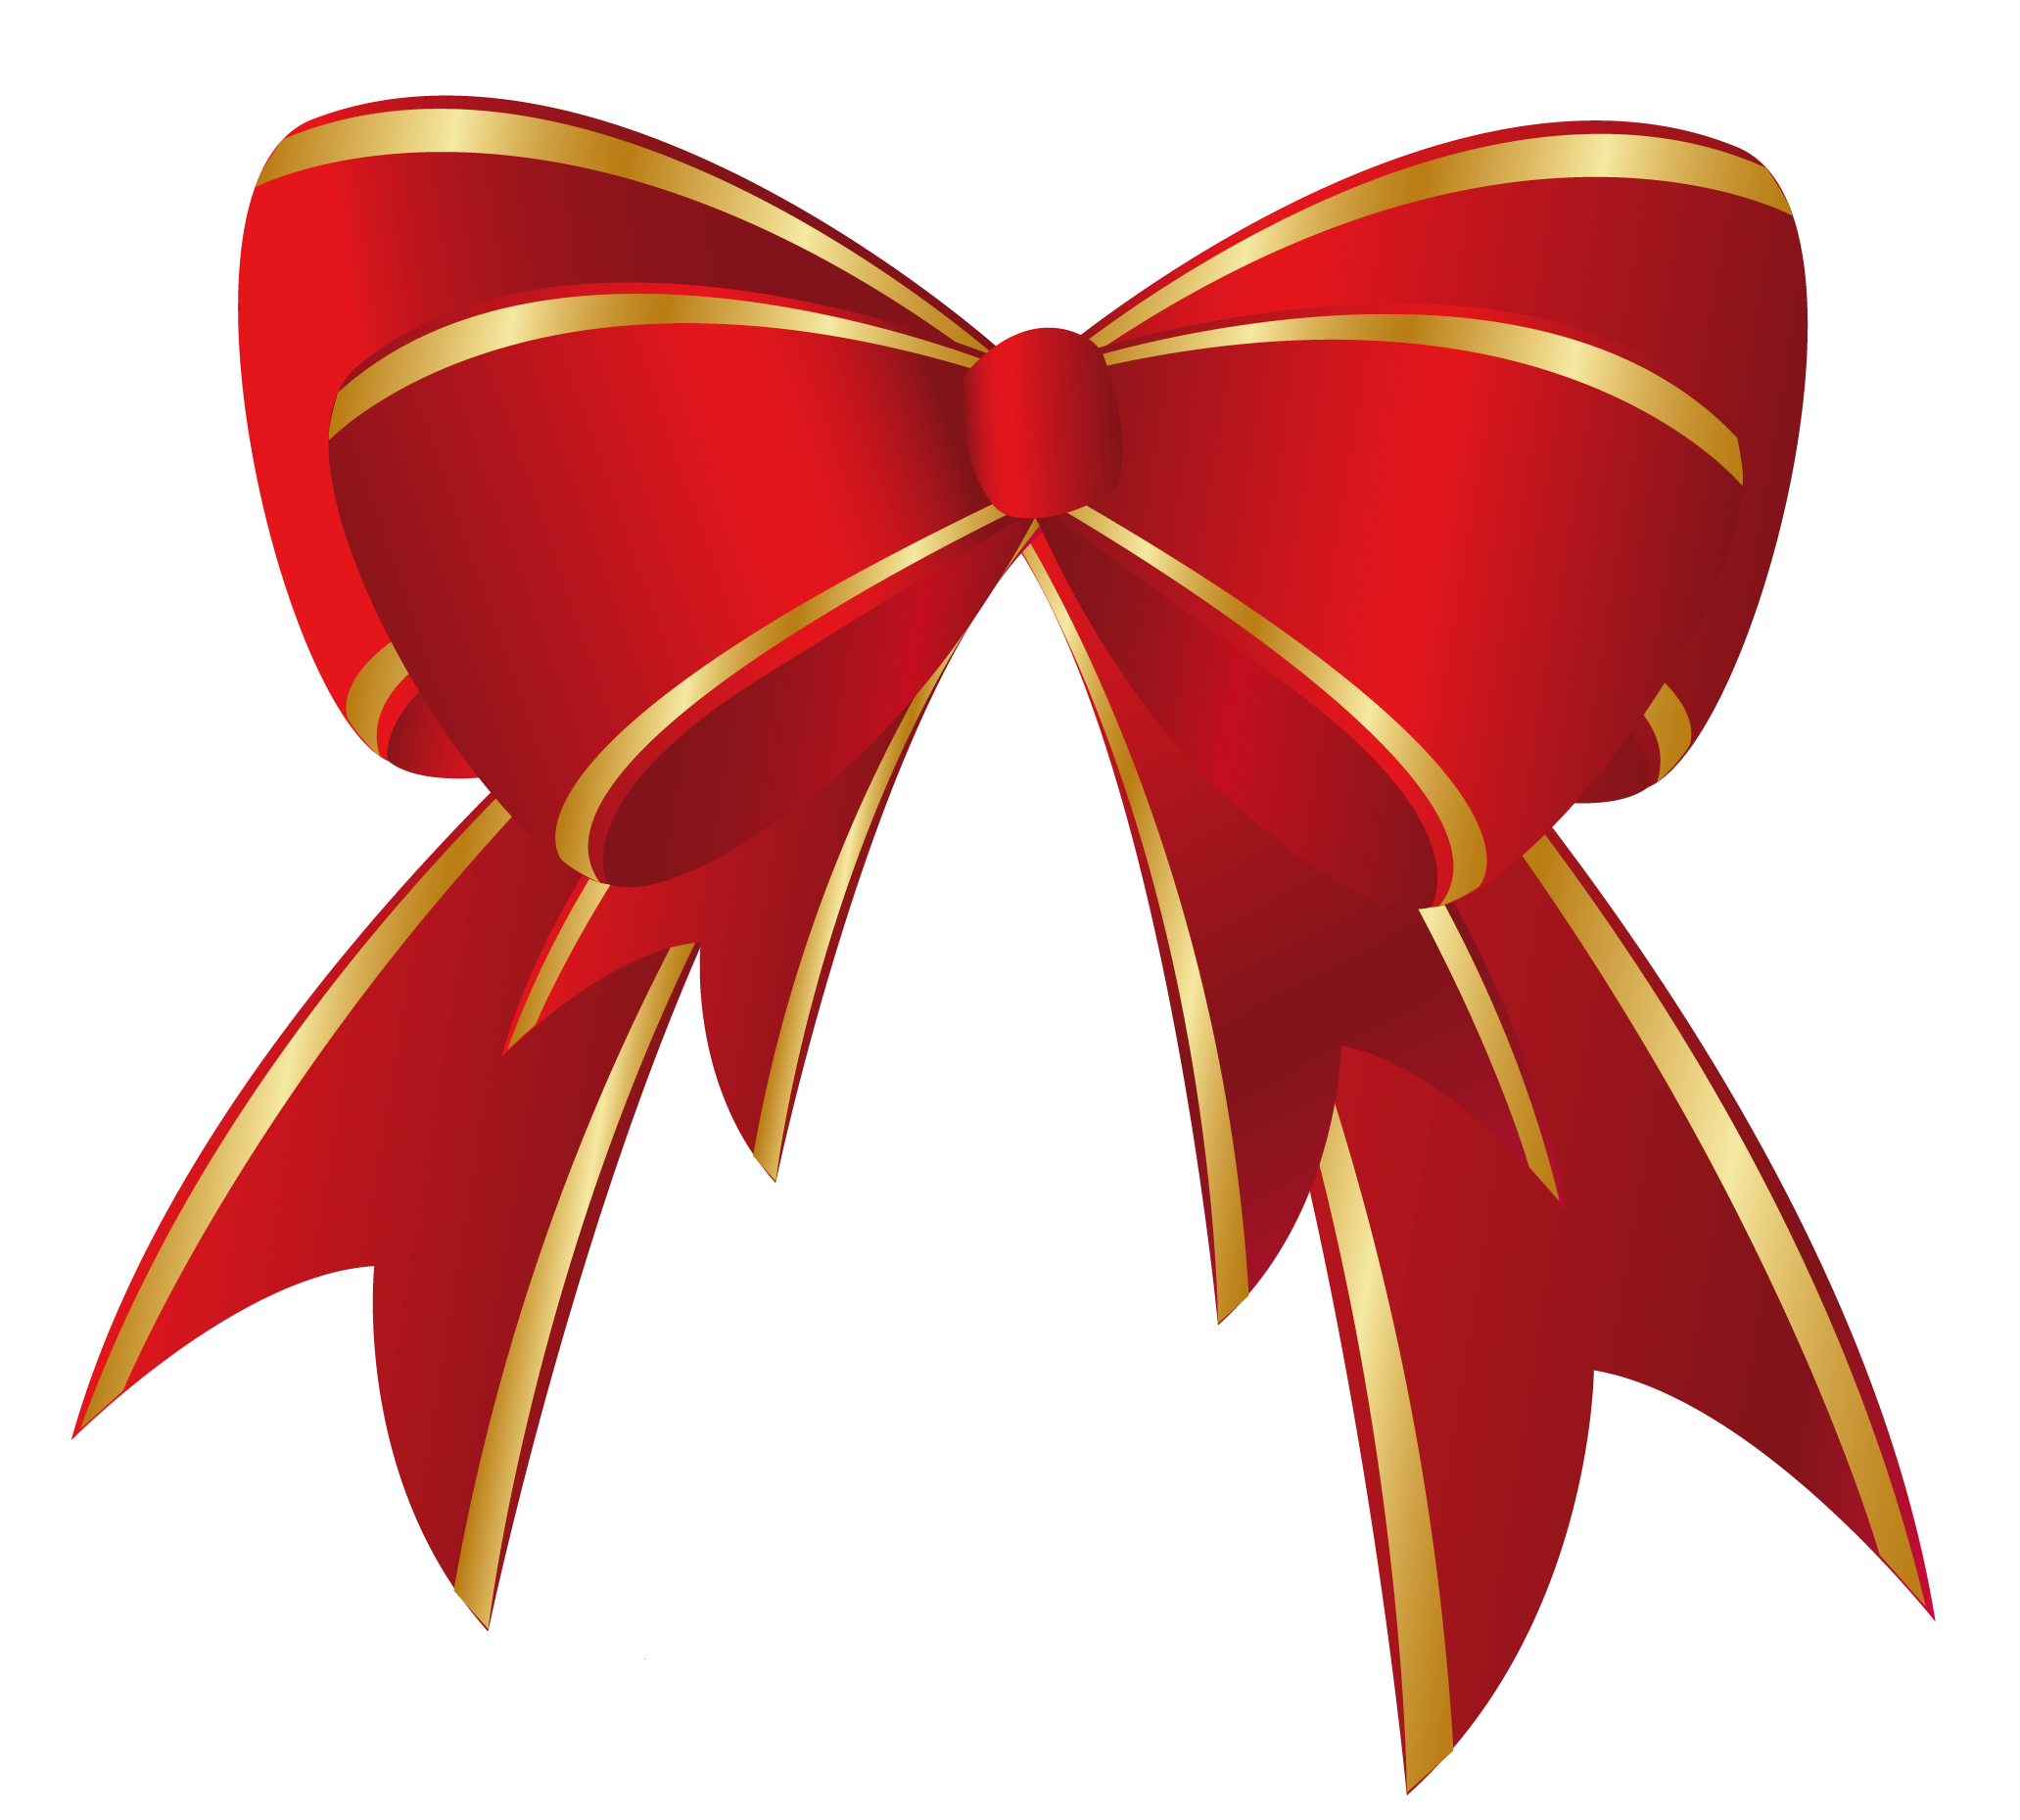 Bows clipart bowknot. Christmas red gold bow